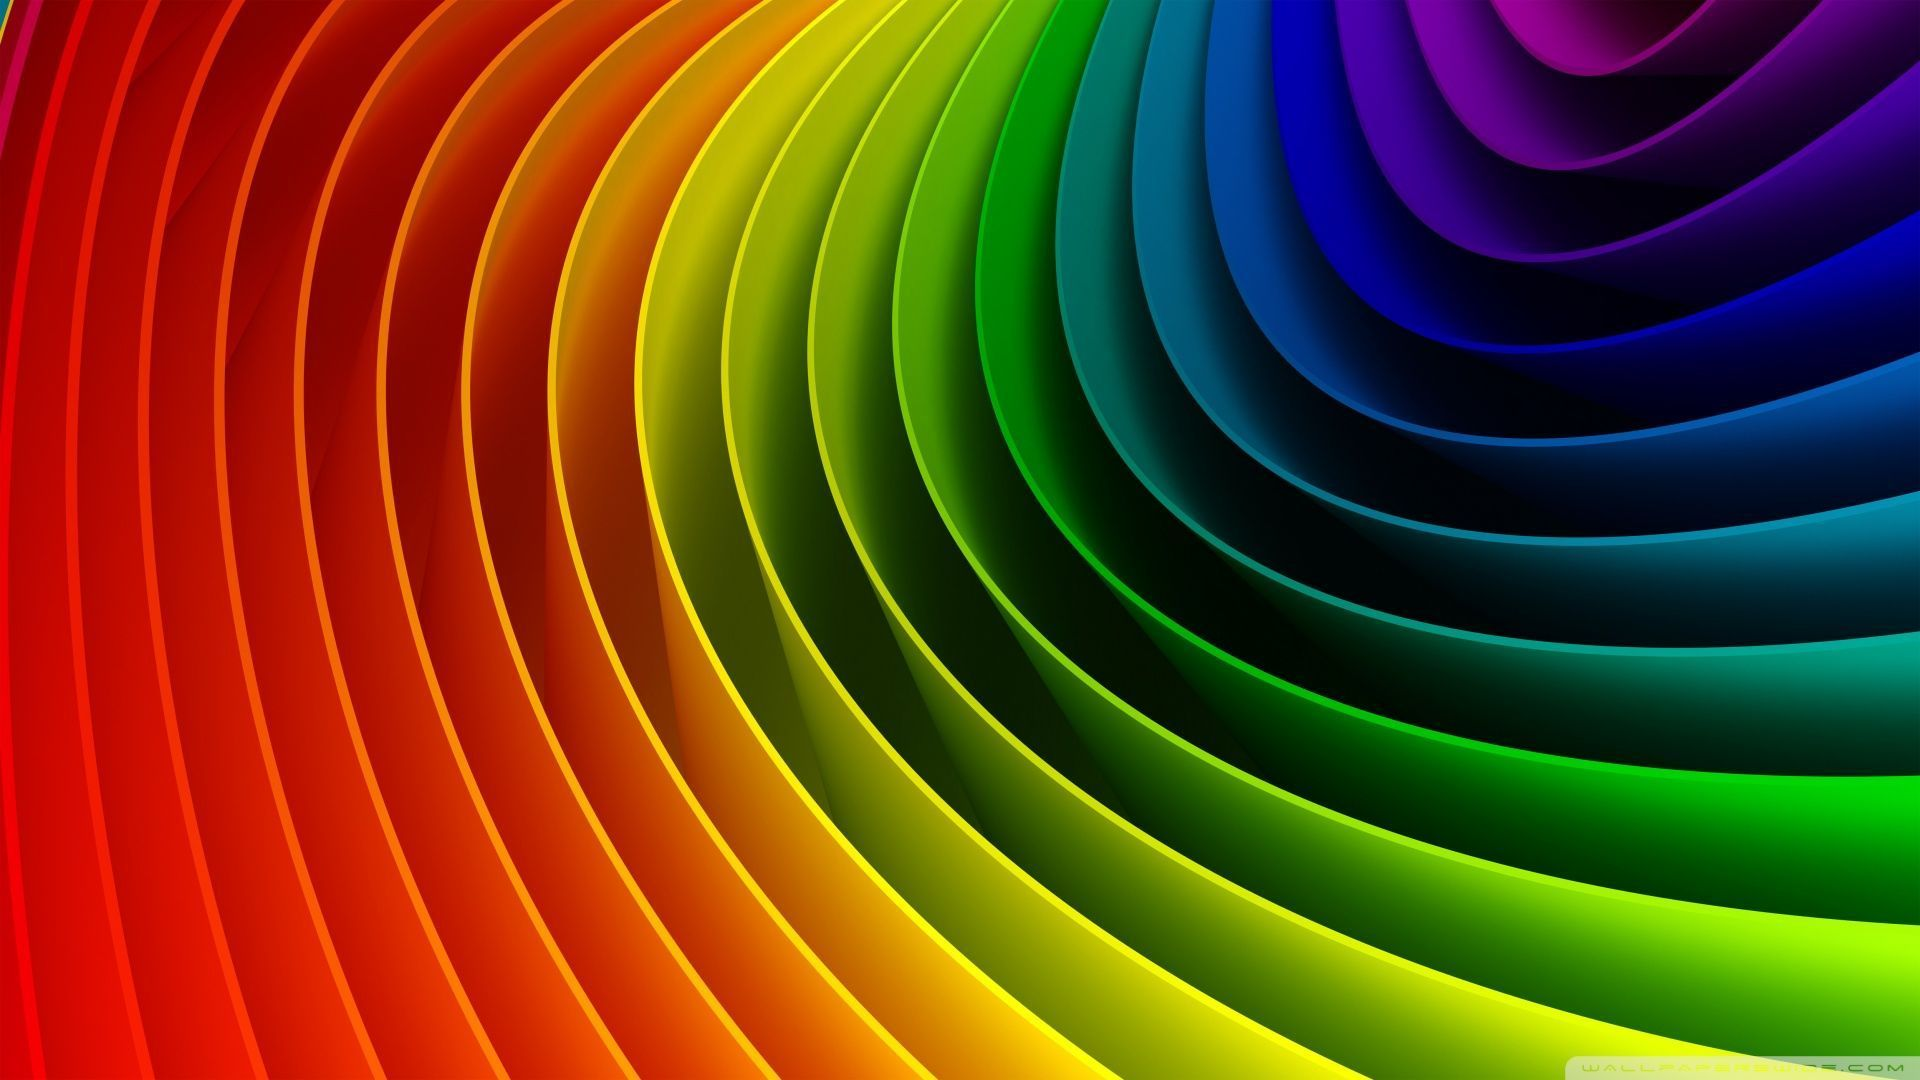 20 Hd Rainbow Background Images And Wallpapers Free Creatives